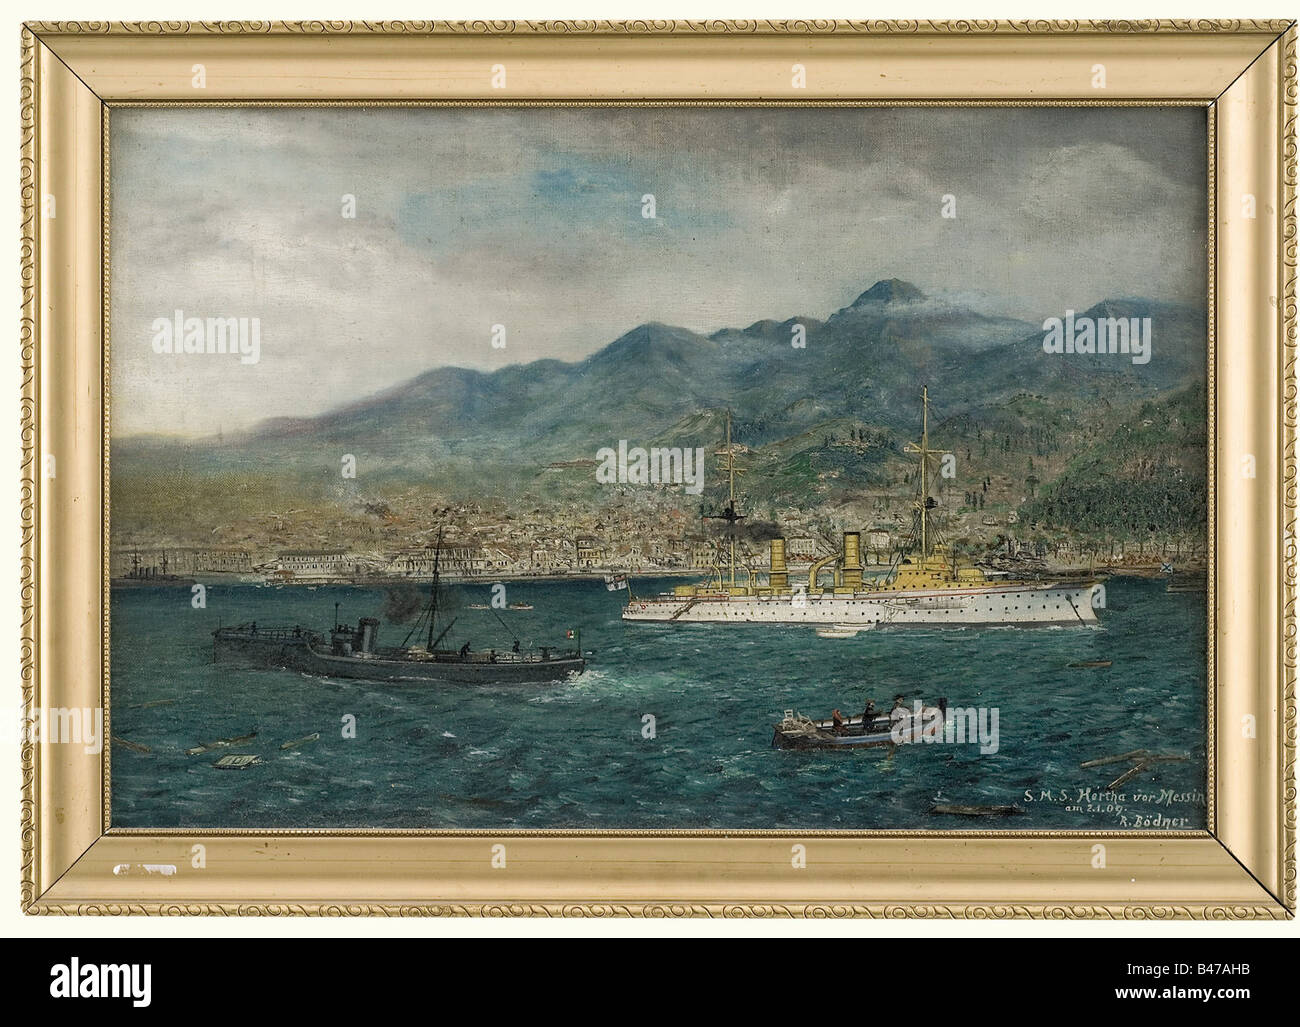 'S.M.S. Hertha at Messina' - signed 'R. Bödner'., Oil on canvas. The Hertha with small boats - Stock Image